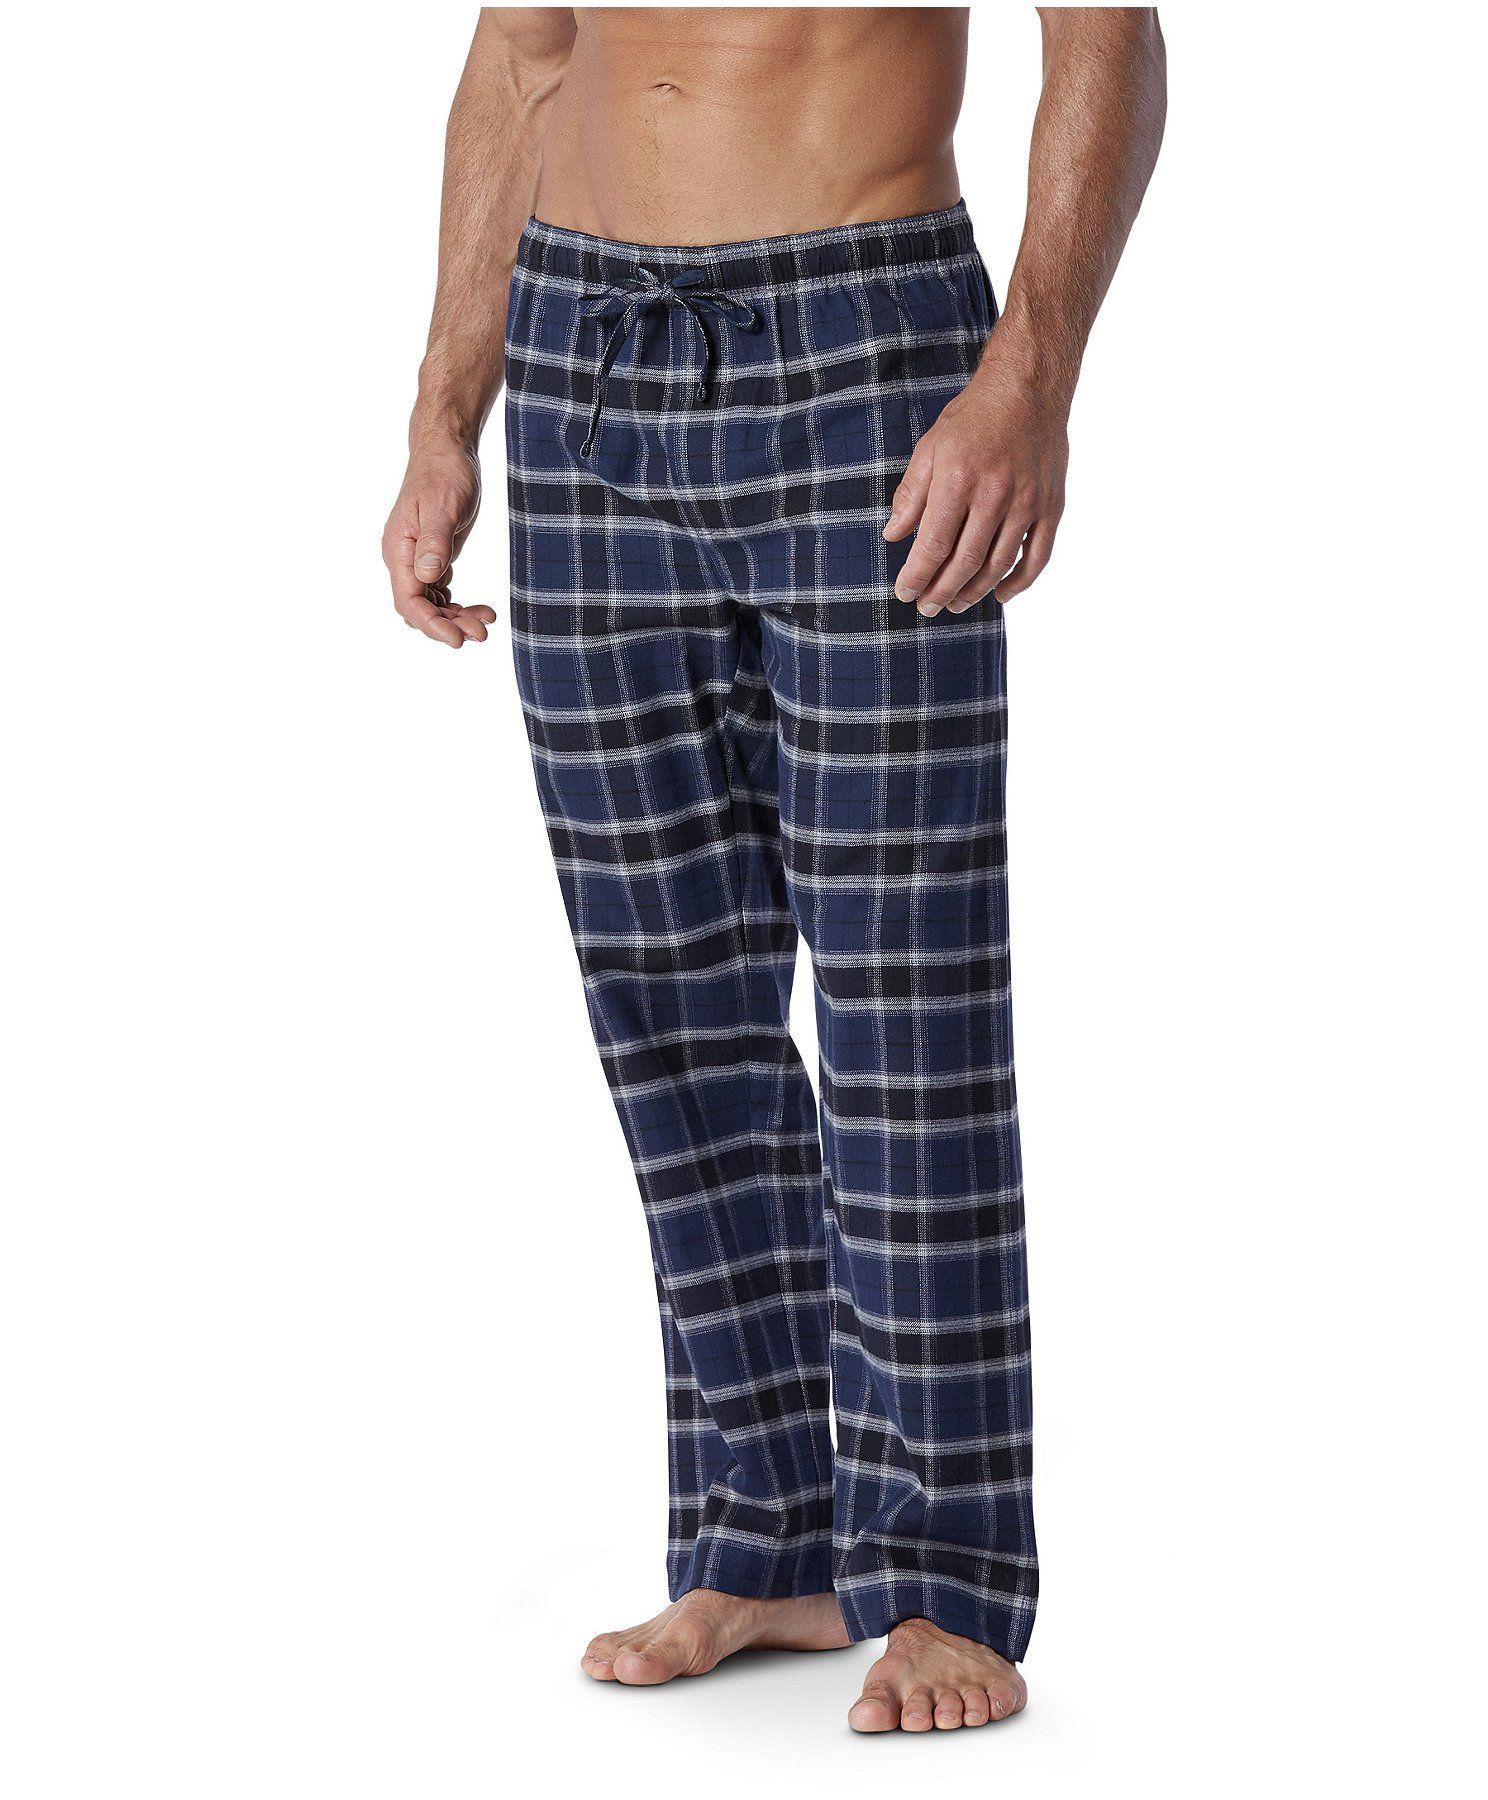 bf8ded286f287 Mark s DH Flannel Pajama Pants in navy plaid  17.99  29.99 ...